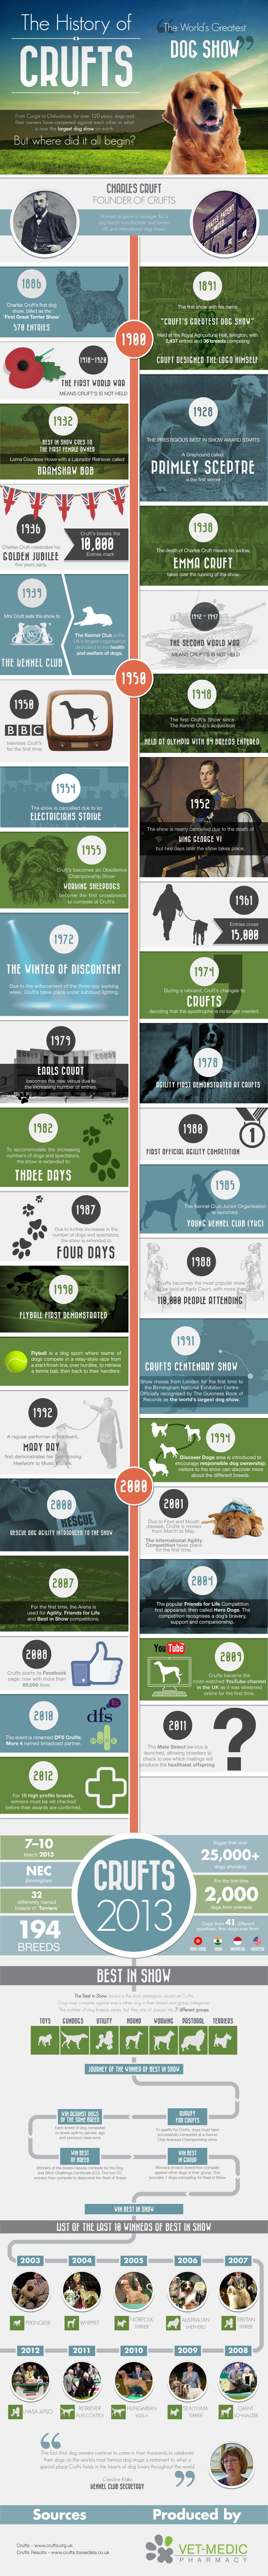 A History Of Crufts #Infographic